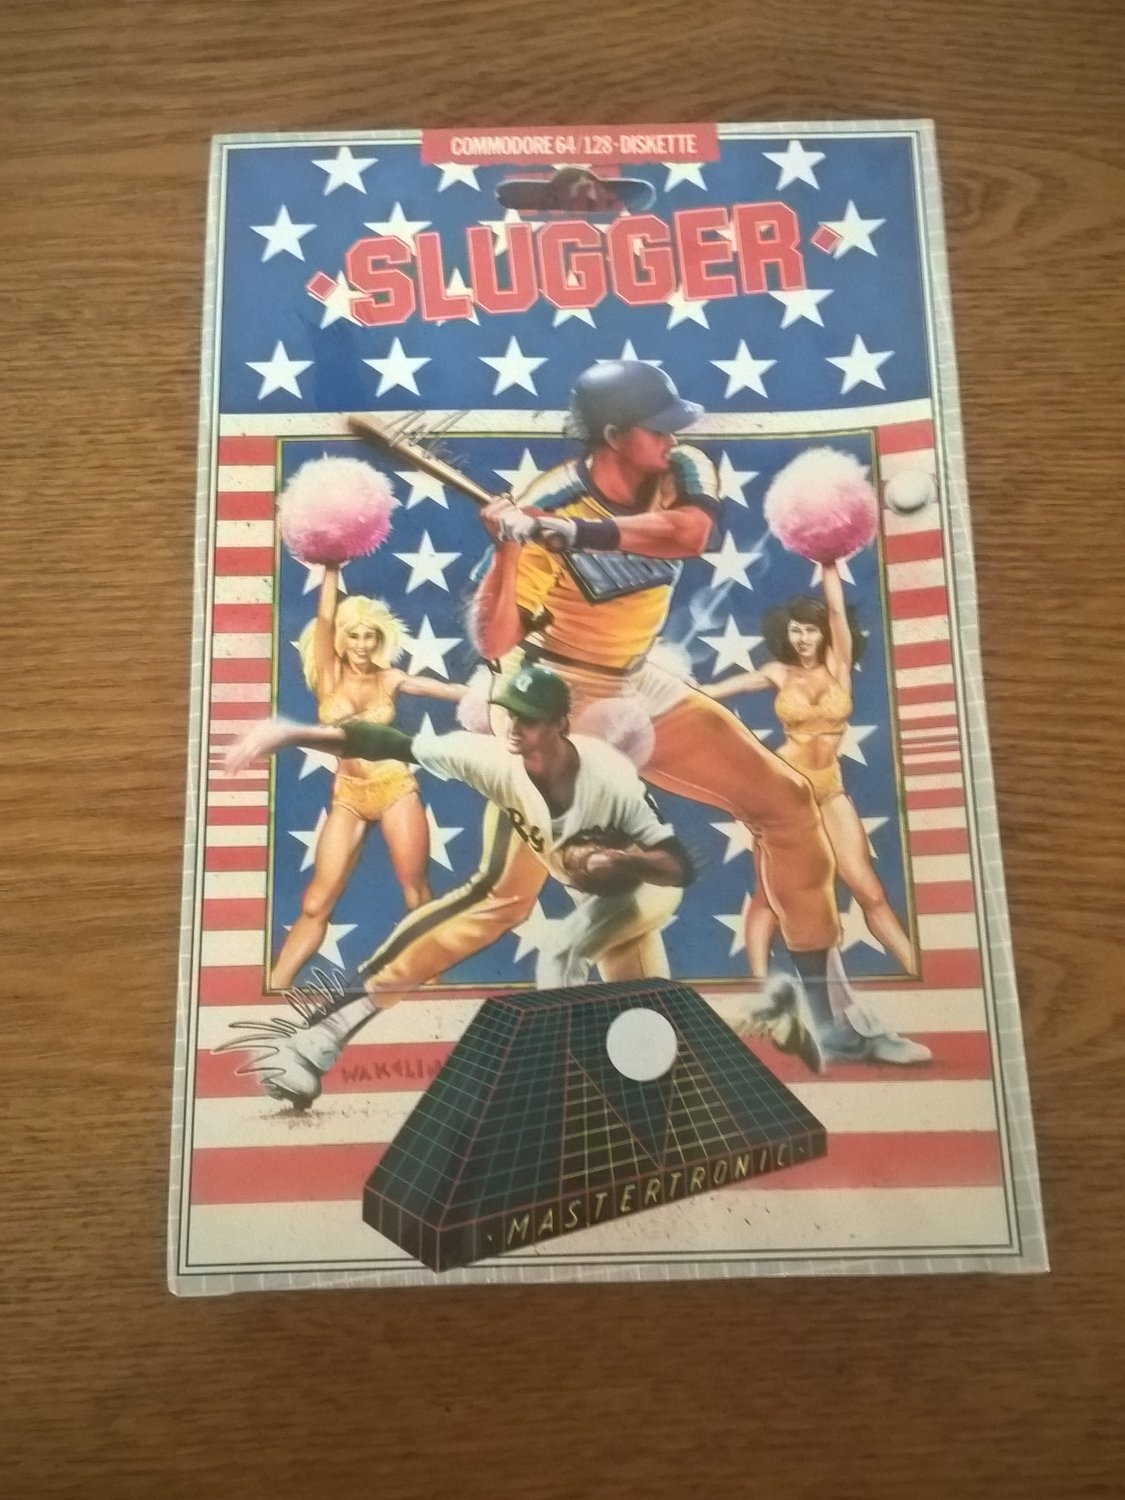 Slugger For Commodore 64/128, NEW FACTORY SEALED, MasterTronic